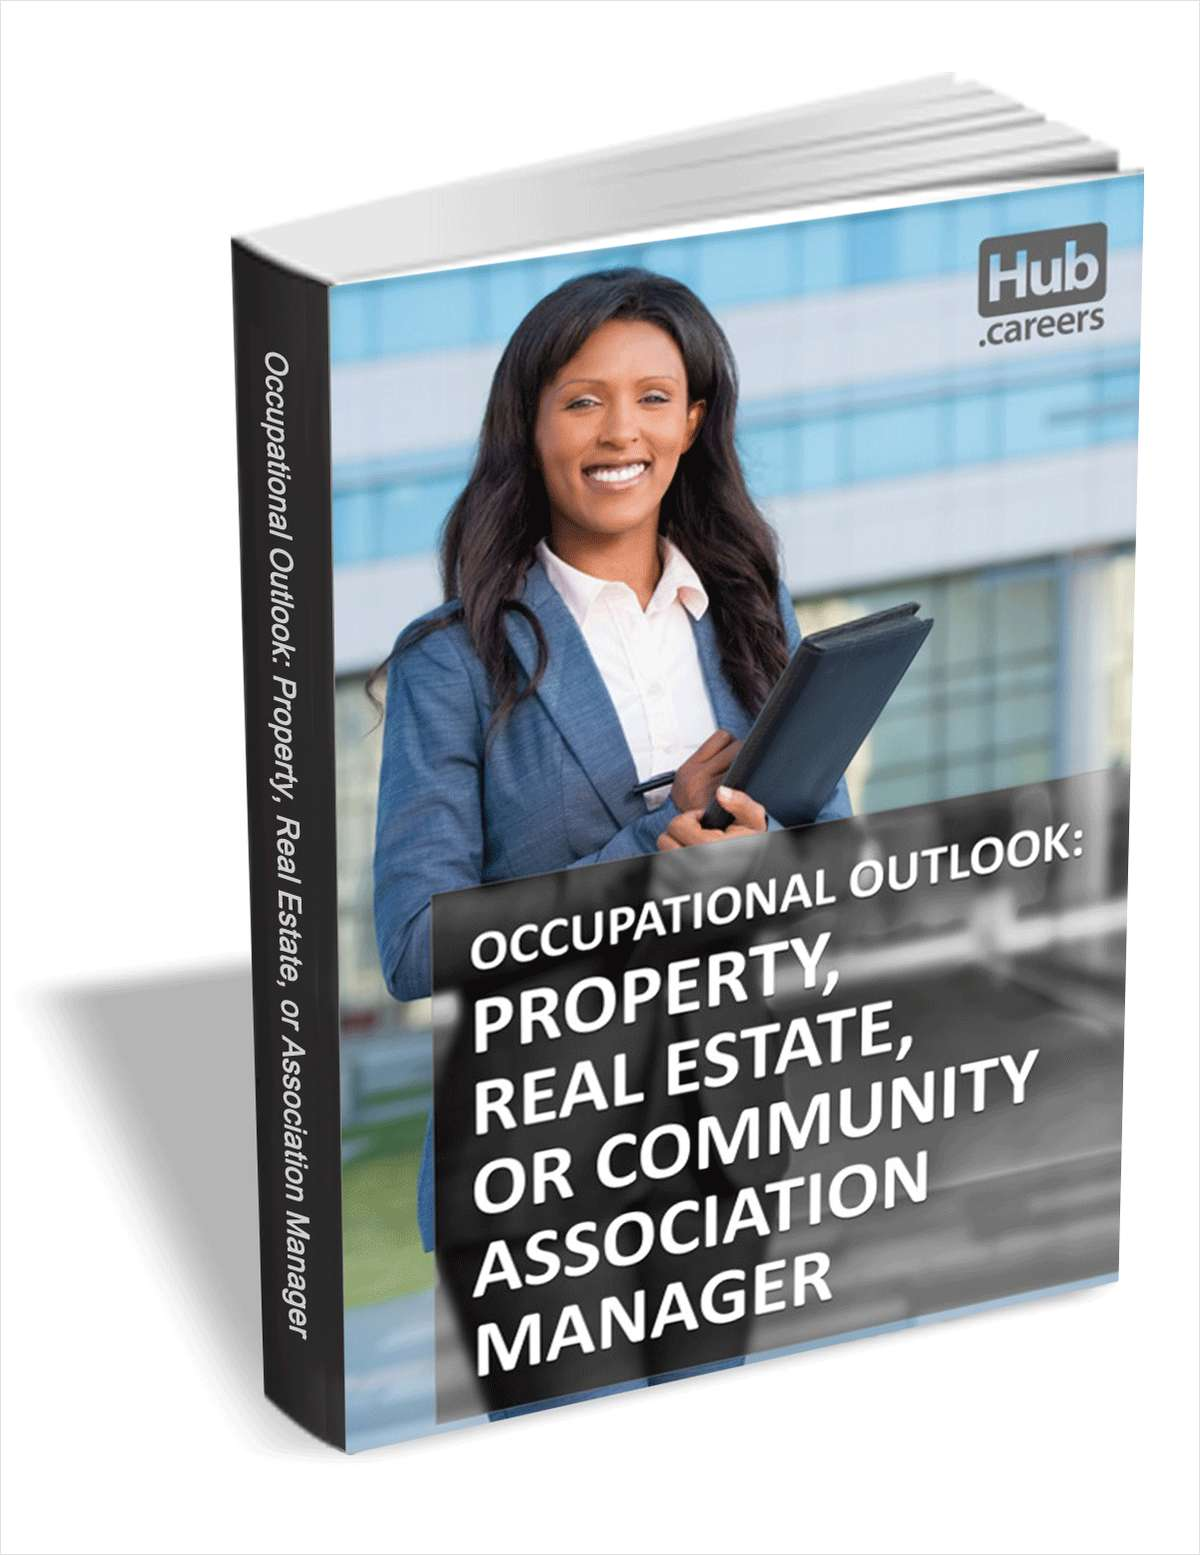 Property Real Estate and Community Association Managers - Occupational Outlook